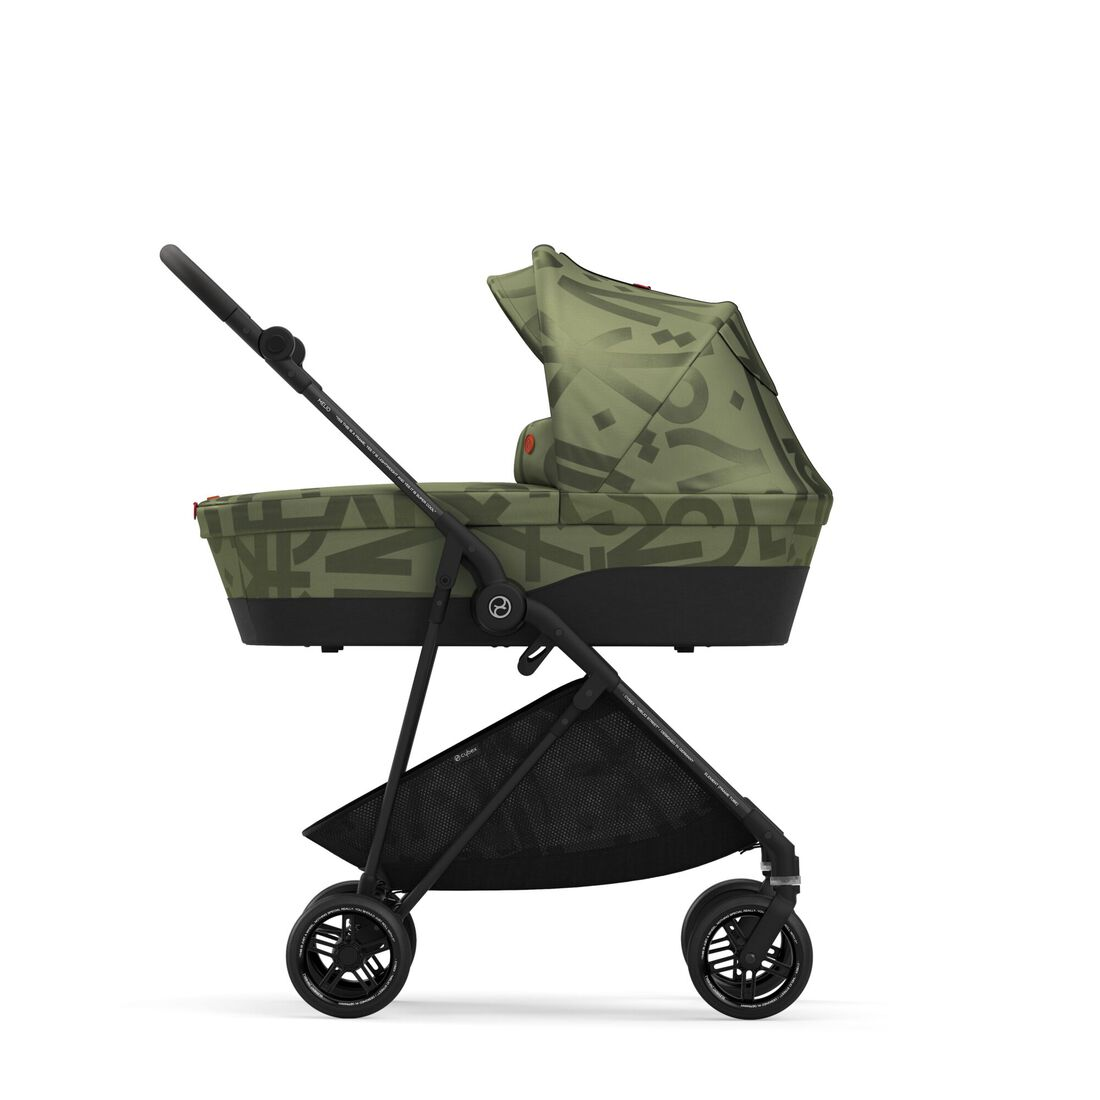 CYBEX Melio Cot - Olive Green in Olive Green large Bild 6